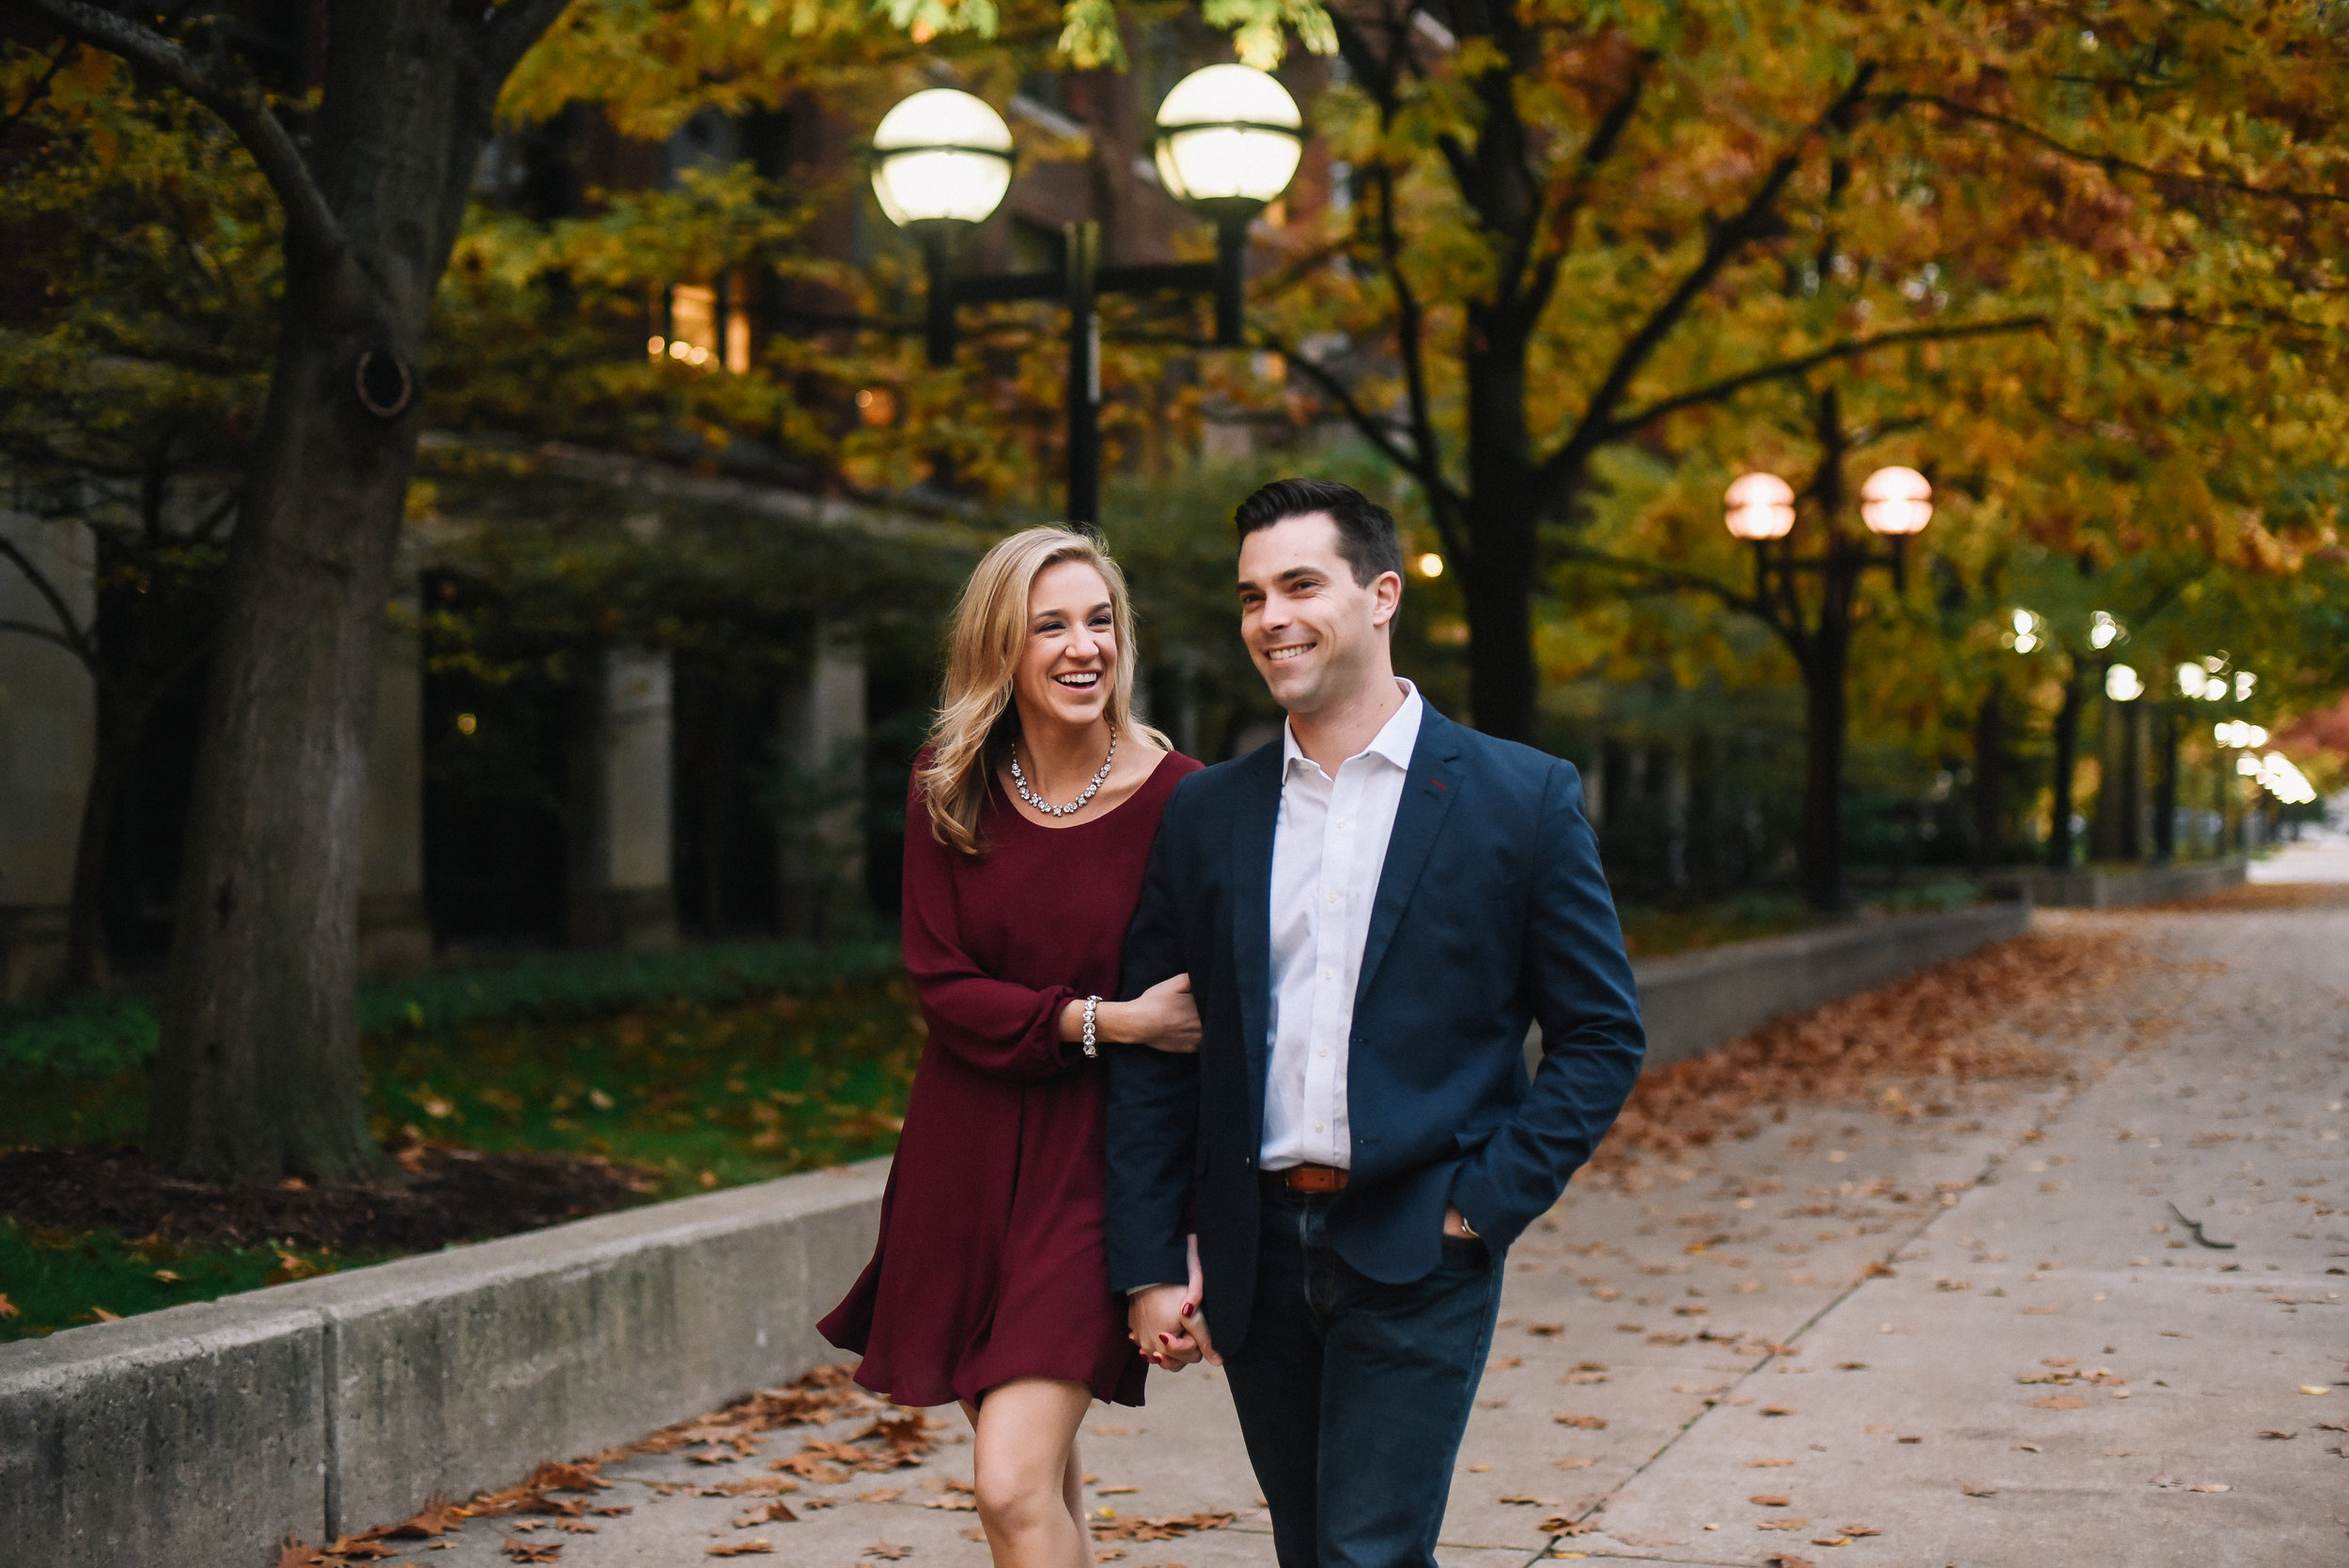 Downtown_Ann_Arbor_Arboretum_Engagement_Photos-25.jpg